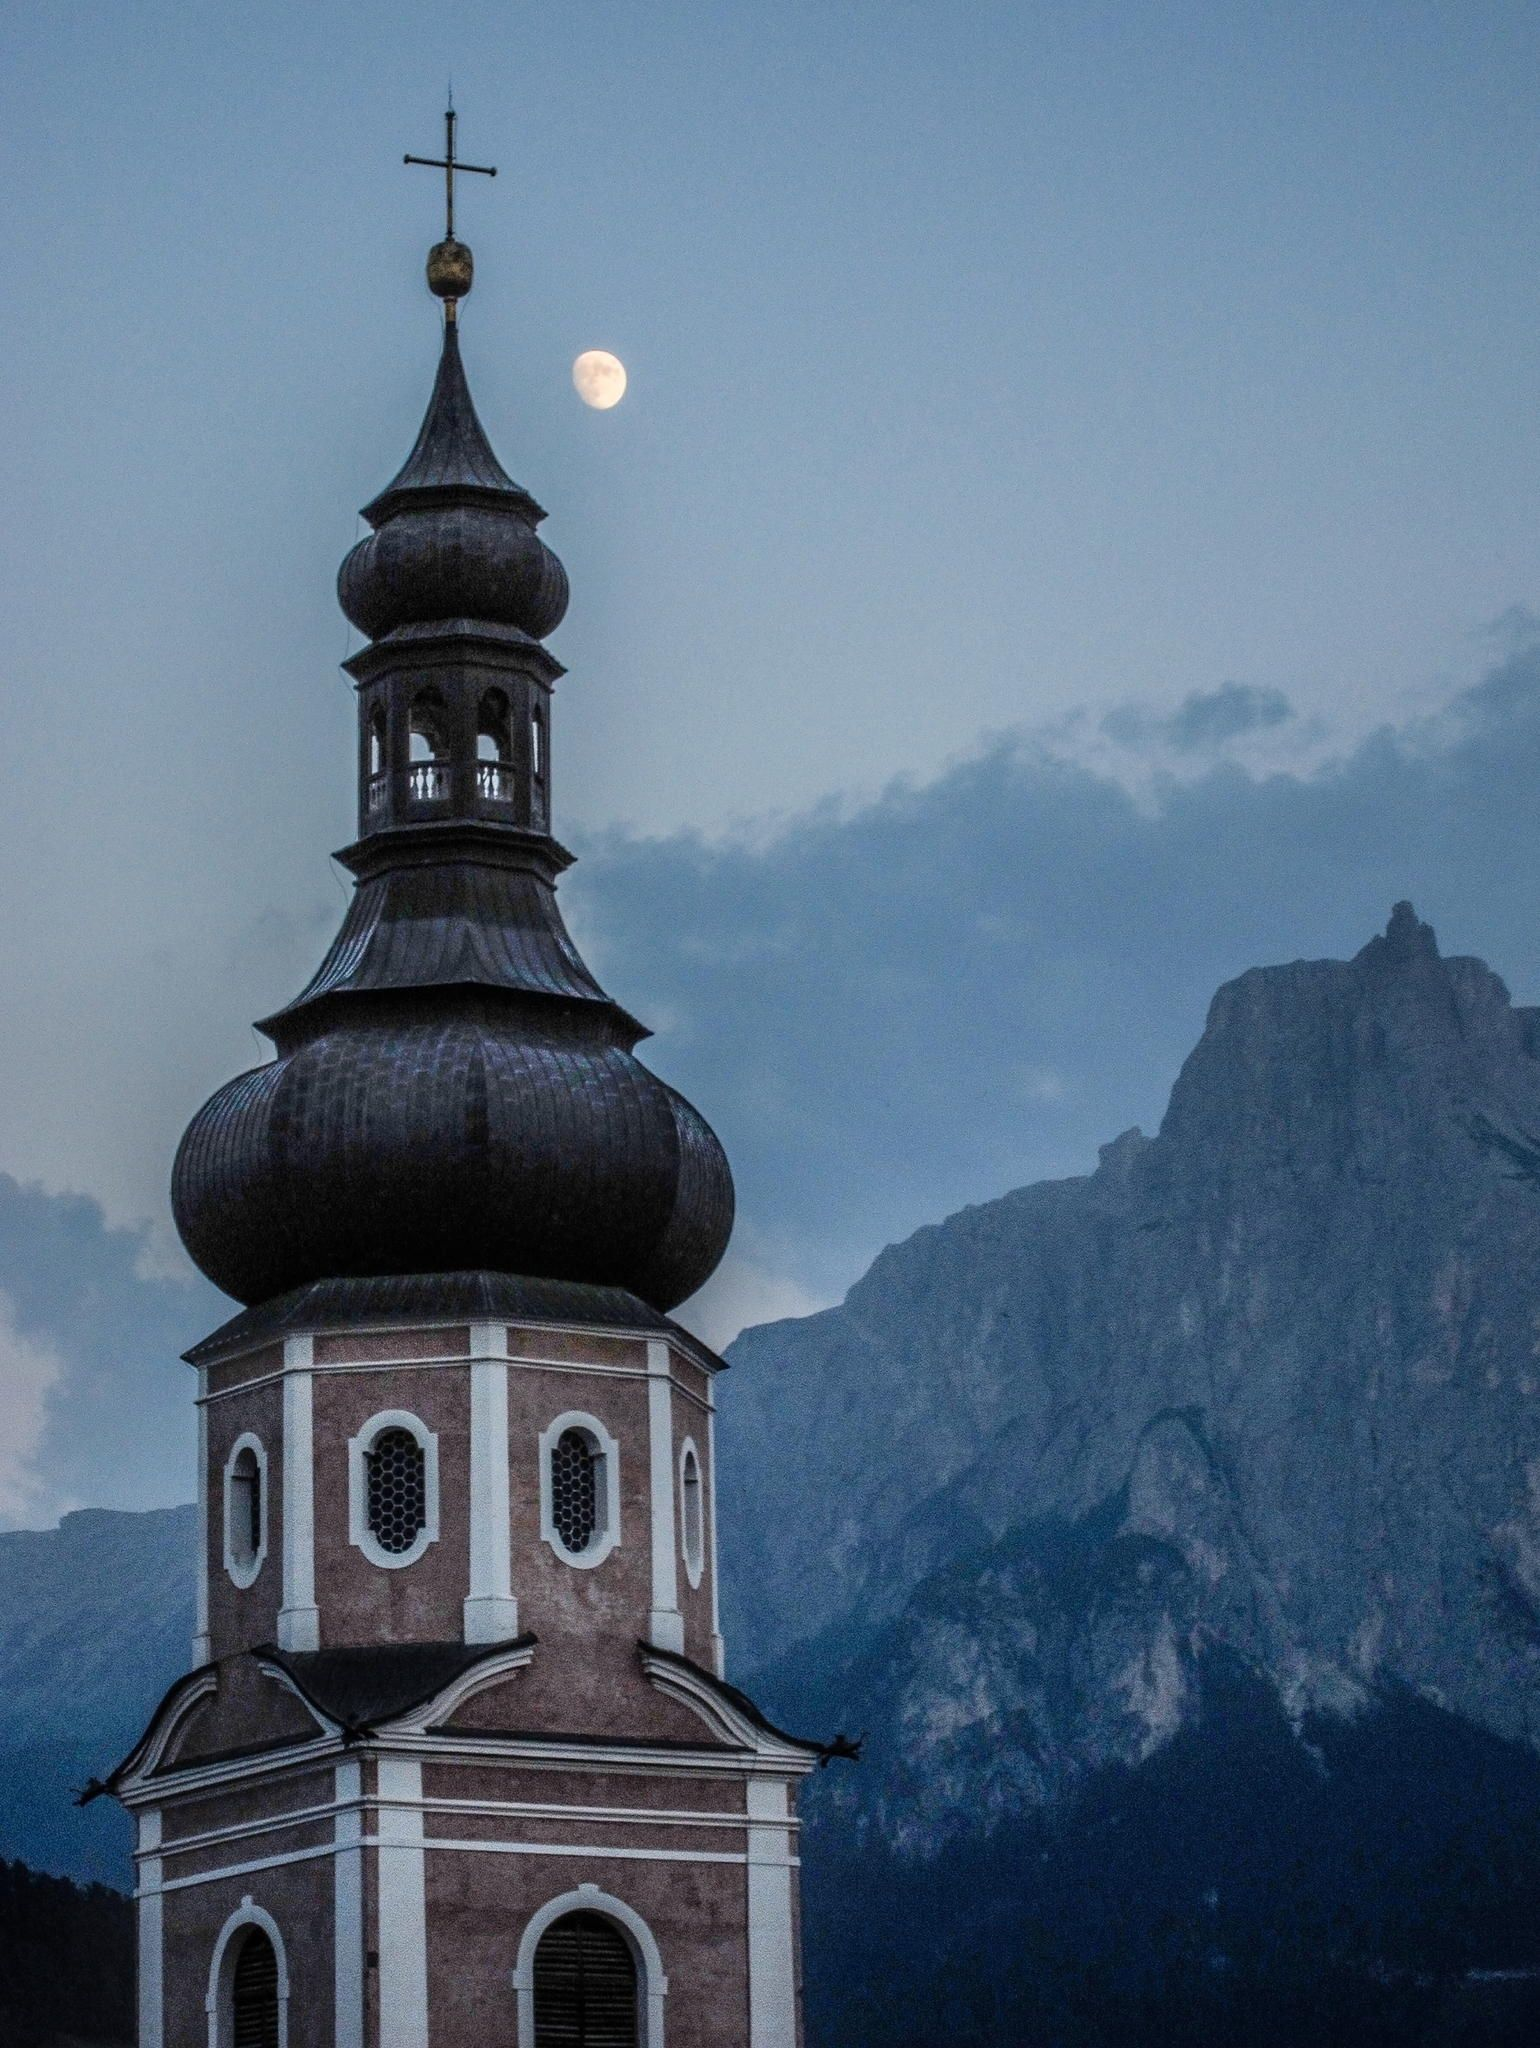 moon + steeple of the parish church of st. peter and paul, castelrotto (kastelruth), south tyrol, italy